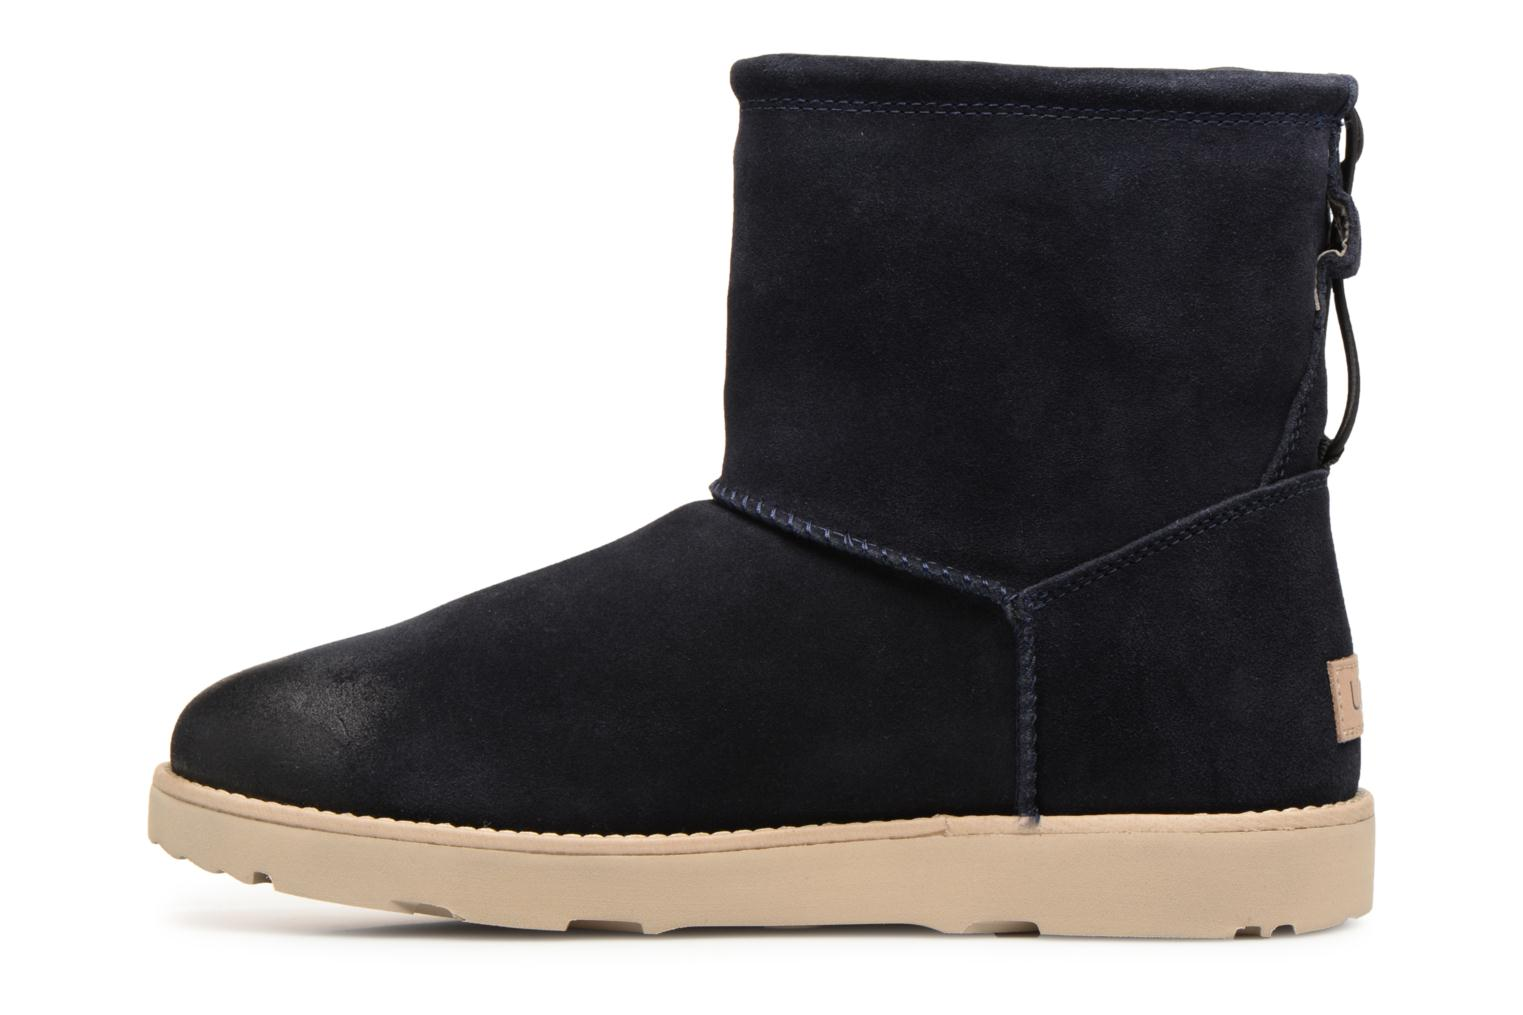 Waterproof Navy Toggle True Ugg Classic M jVLGUzpqSM